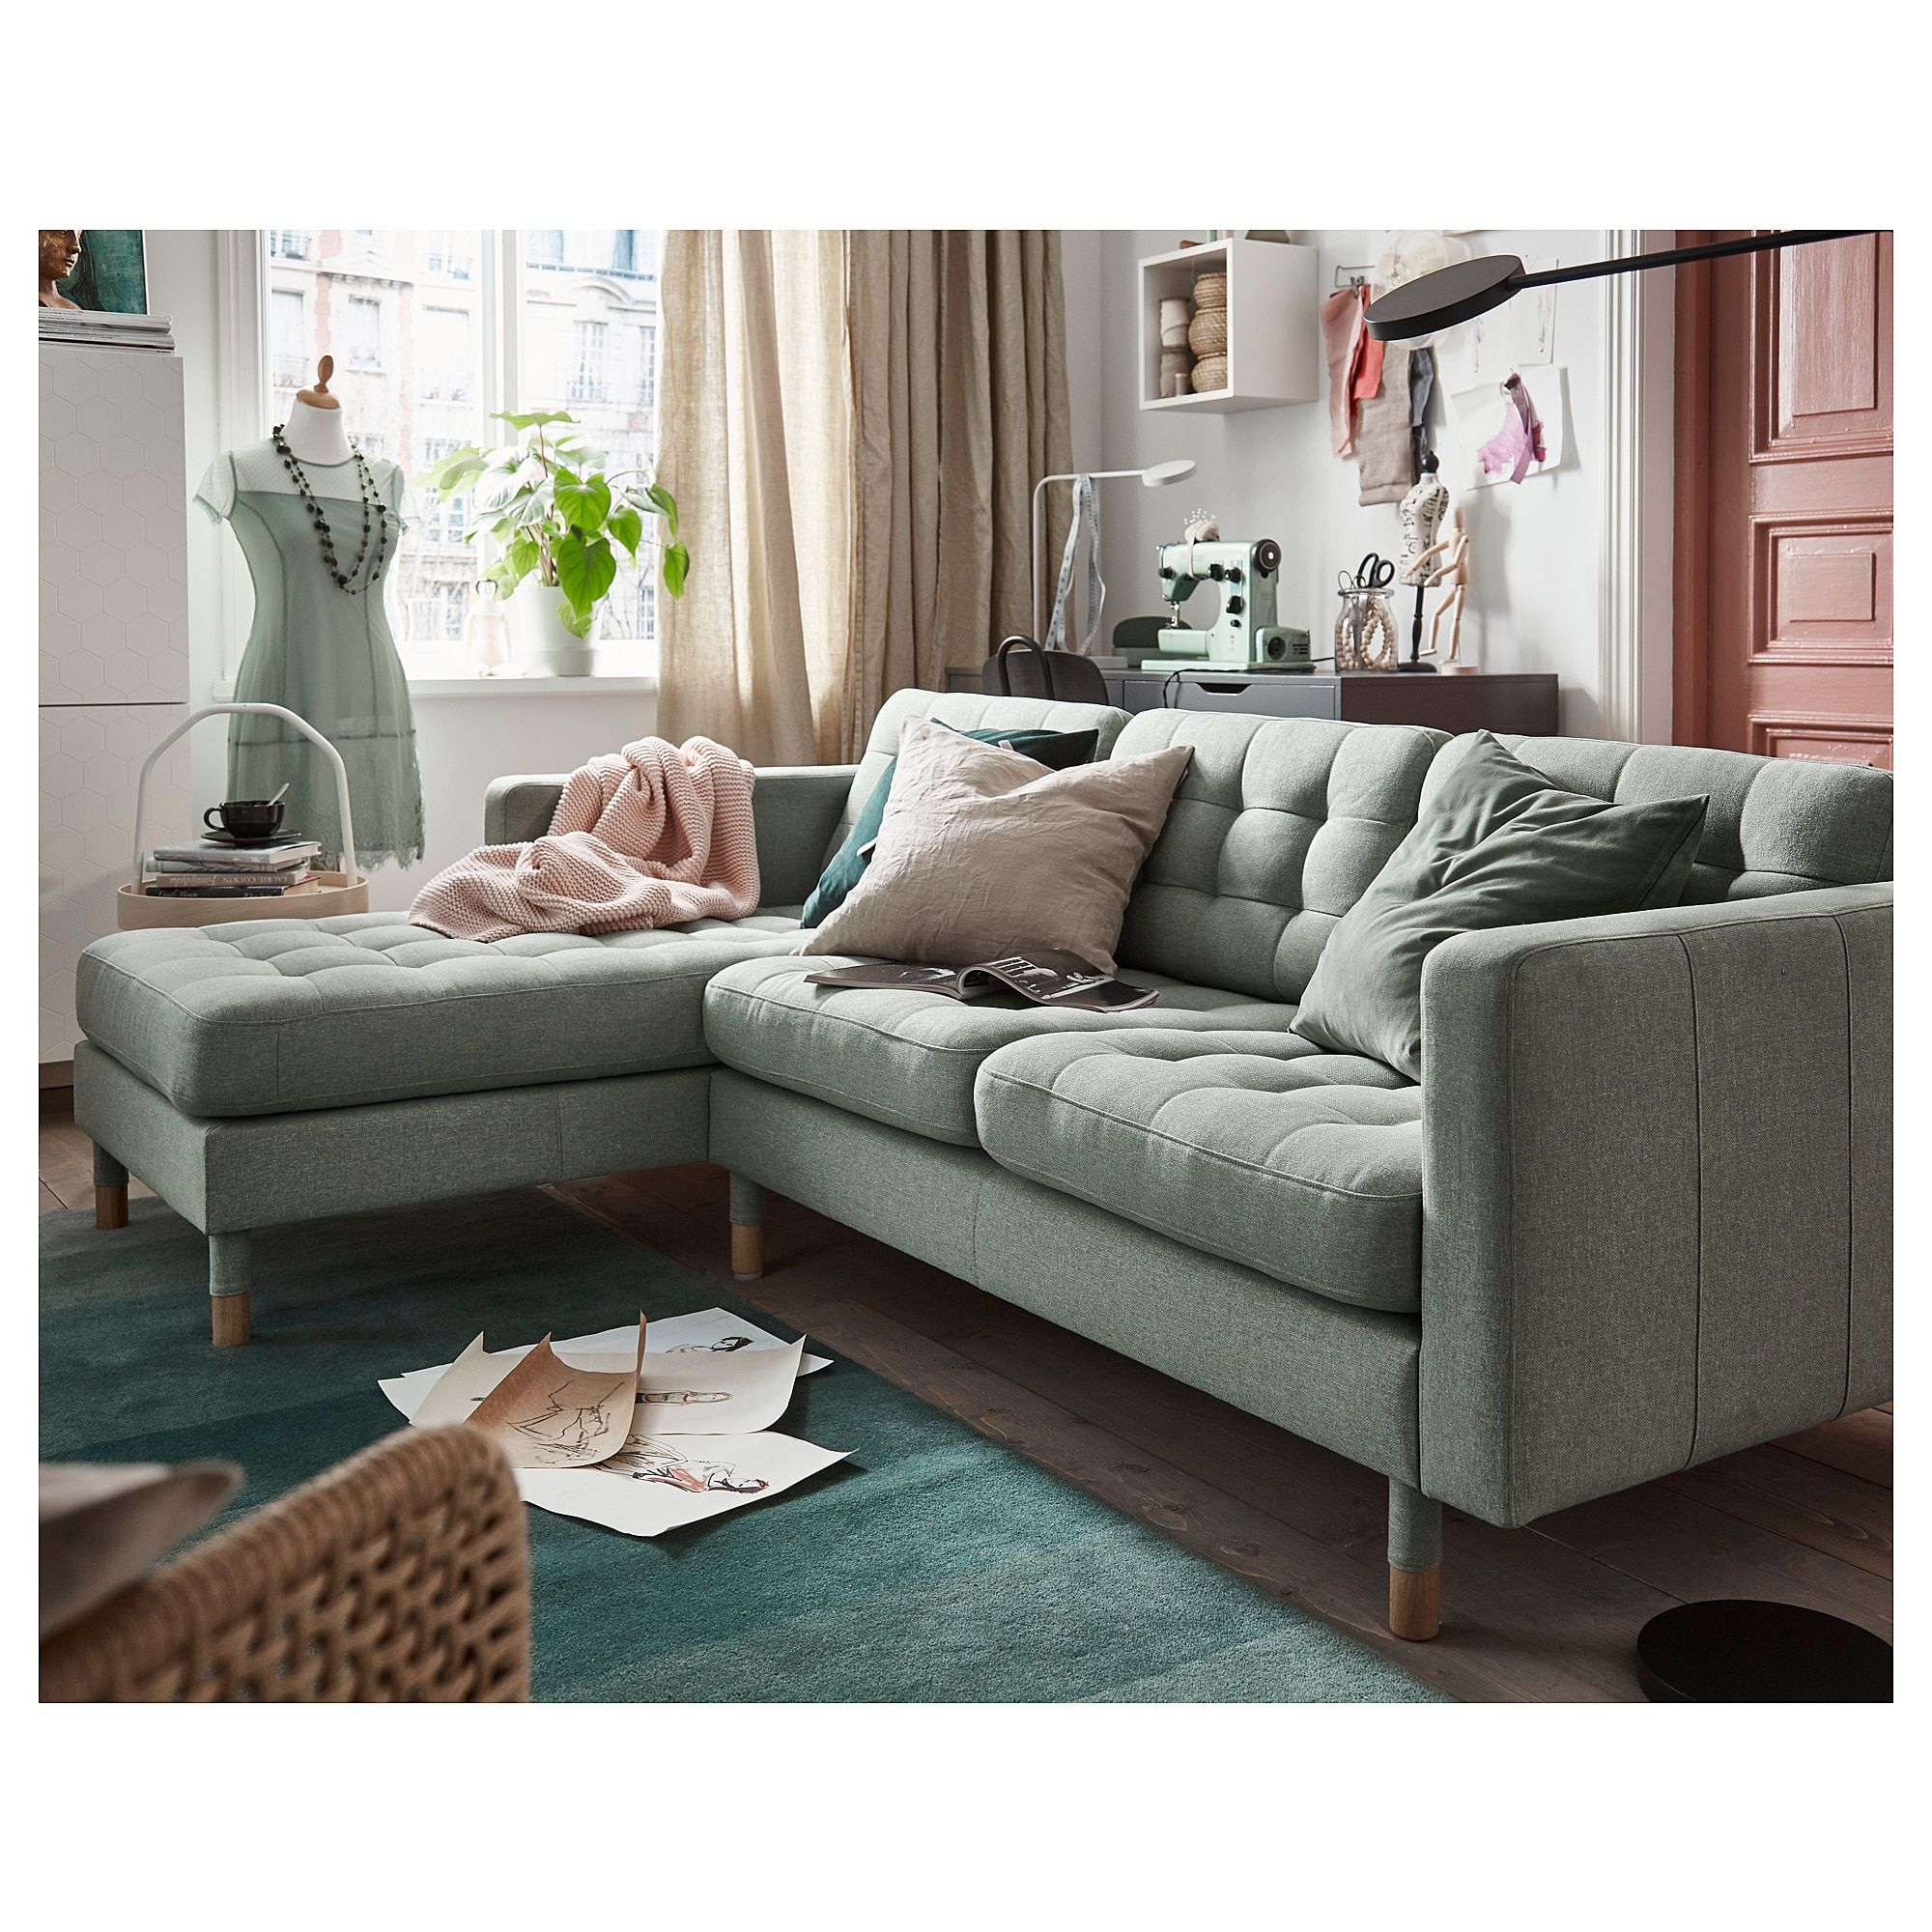 Landskrona Sofa With Chaise Gunnared Dark Gray Wood Green Couch Living Room Green Sofa Living Room Living Room Sofa